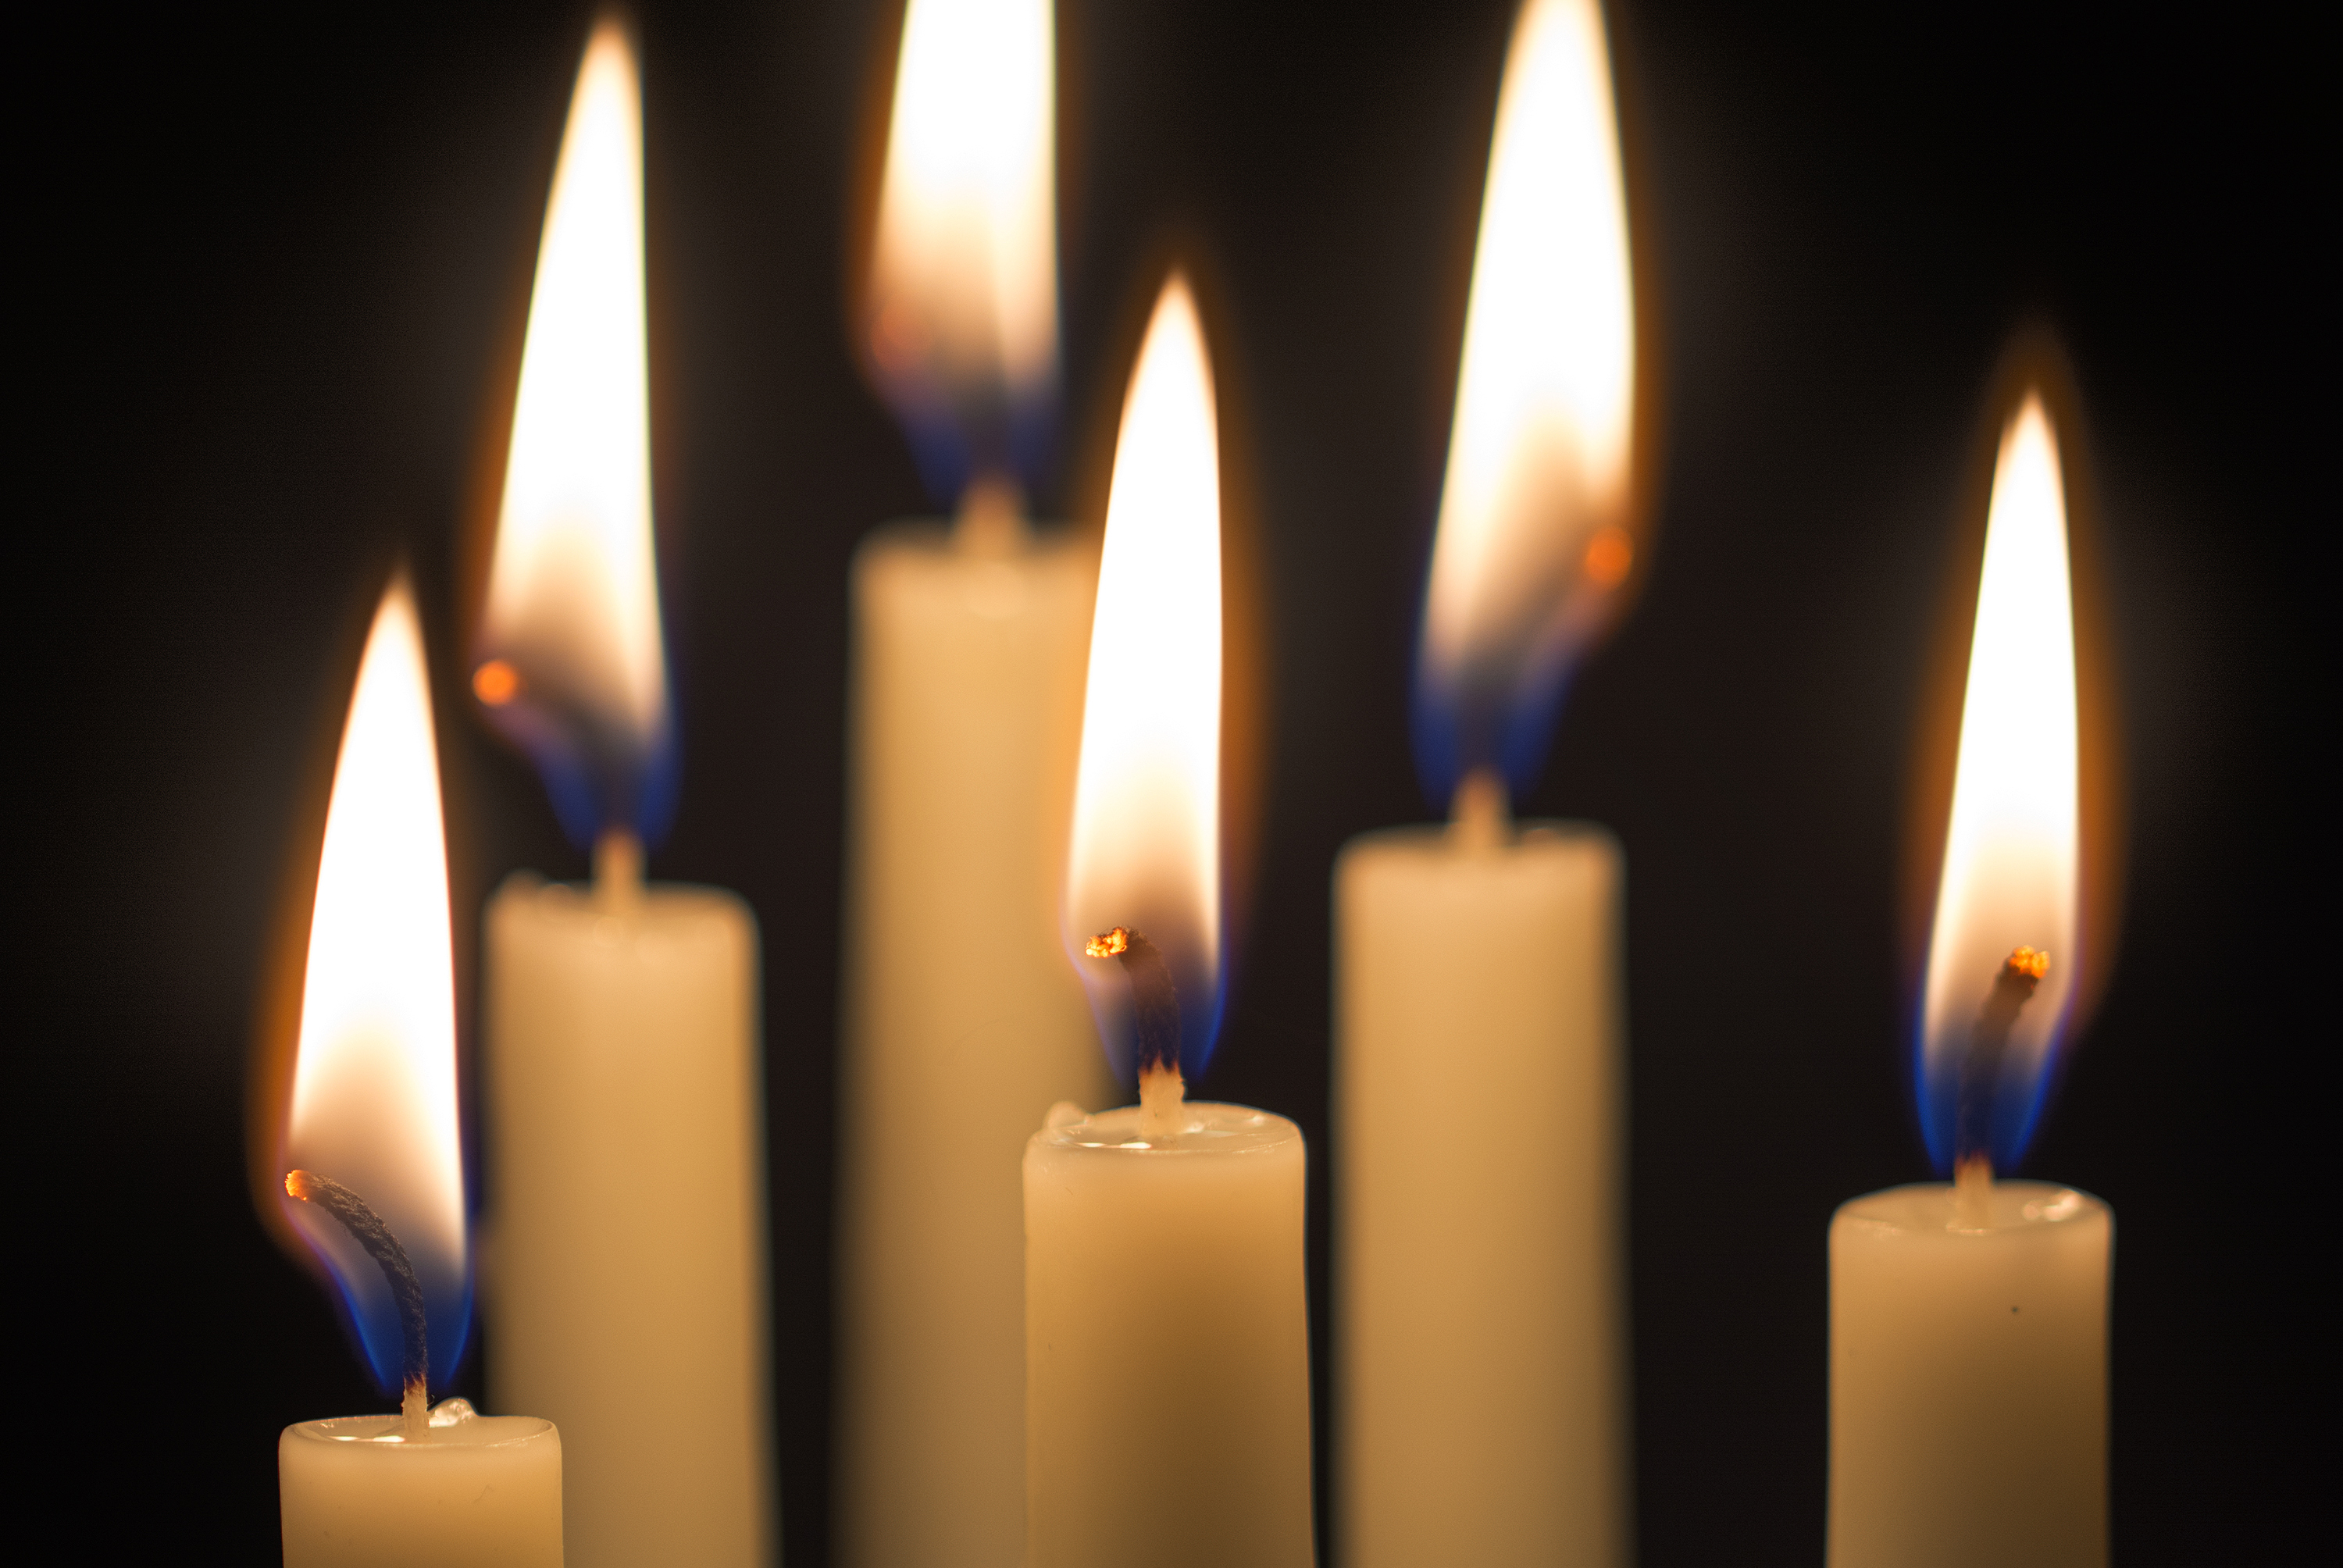 group of six burning candles against black background, selected